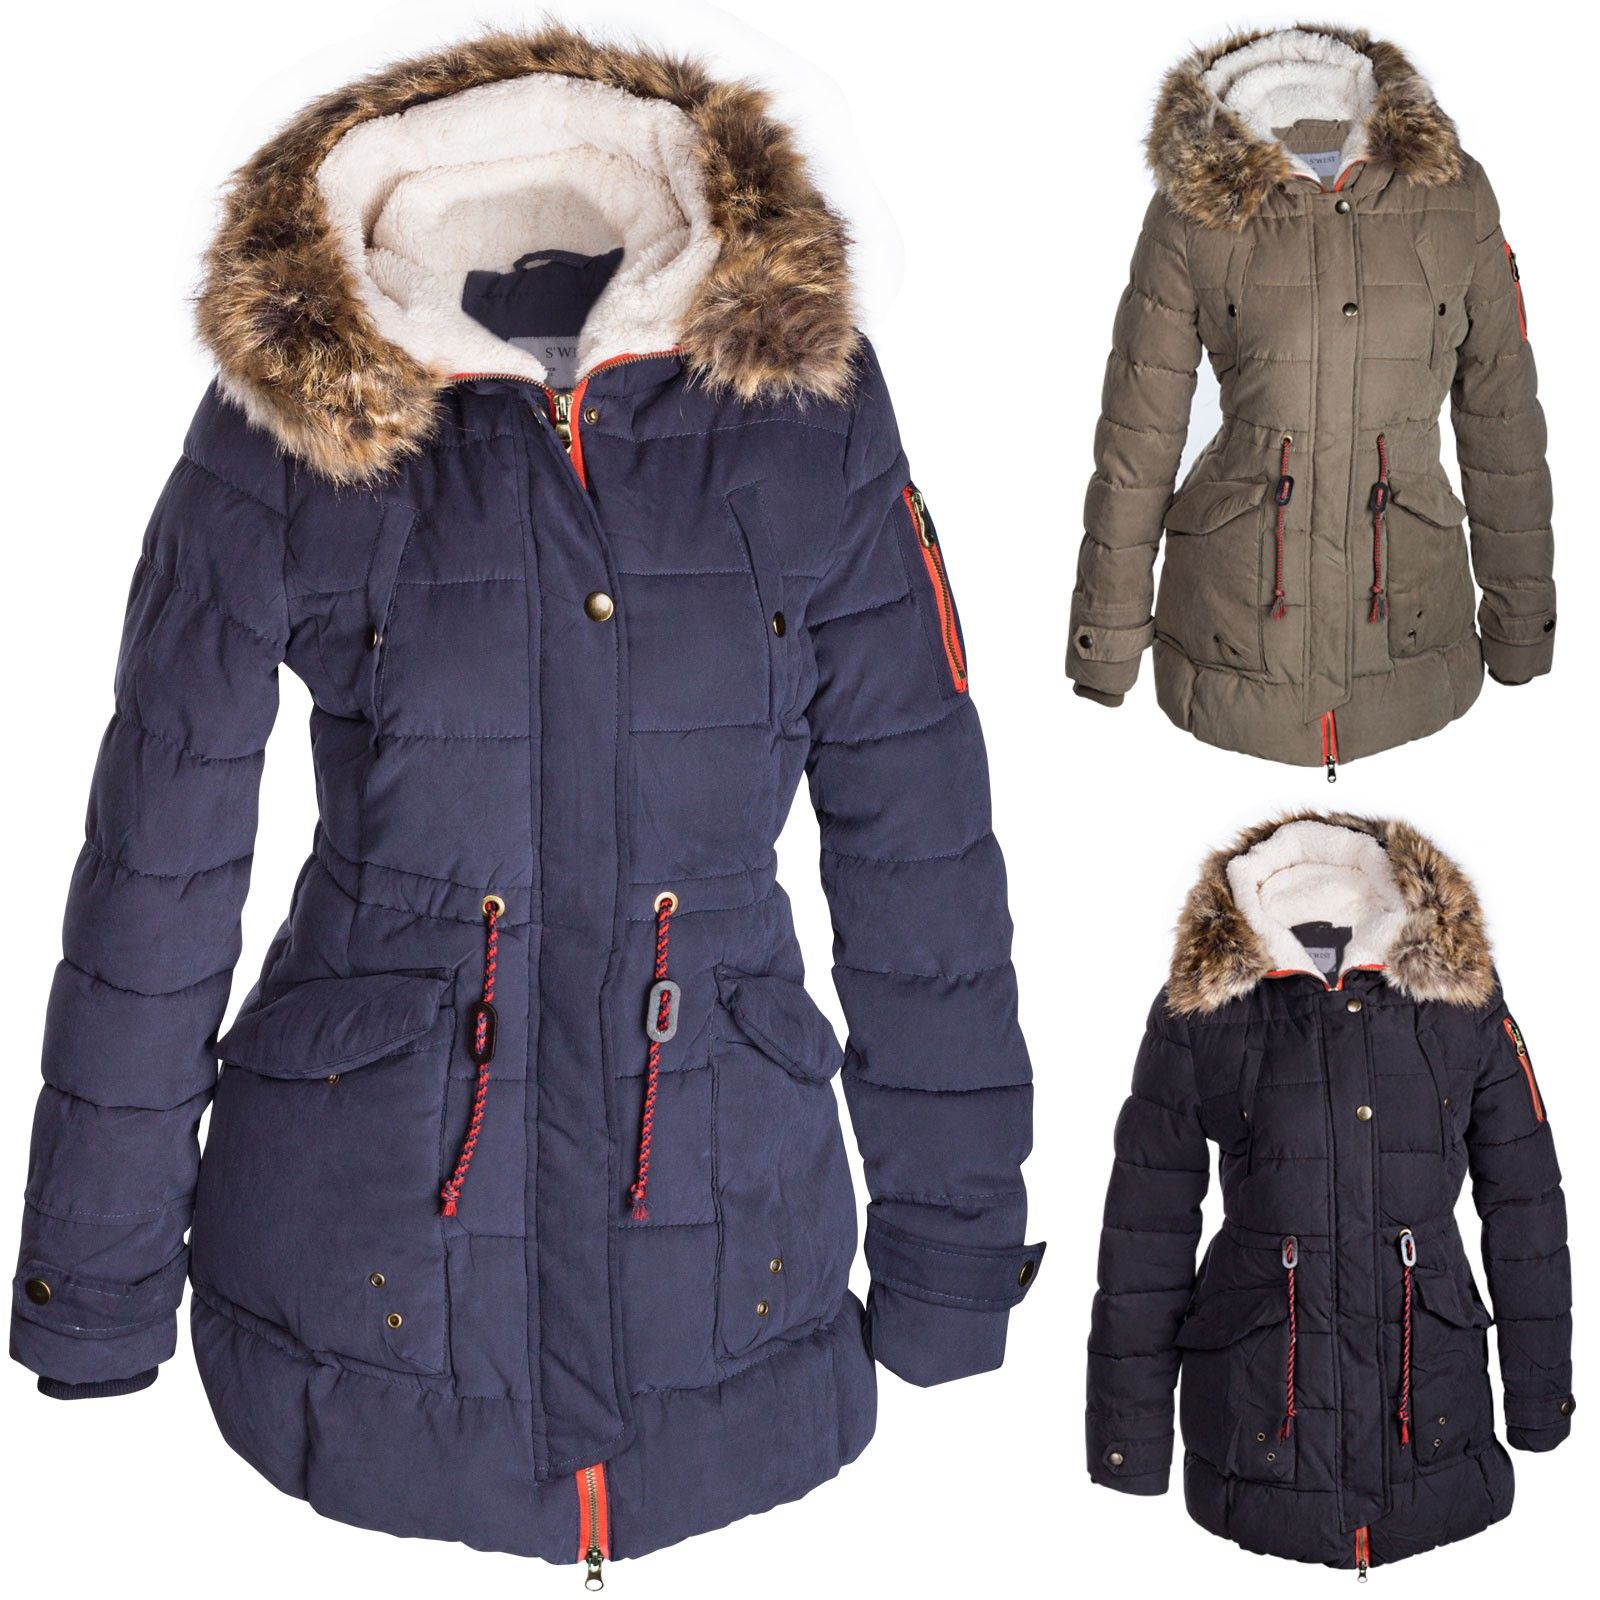 Manner winterjacken mode 2015